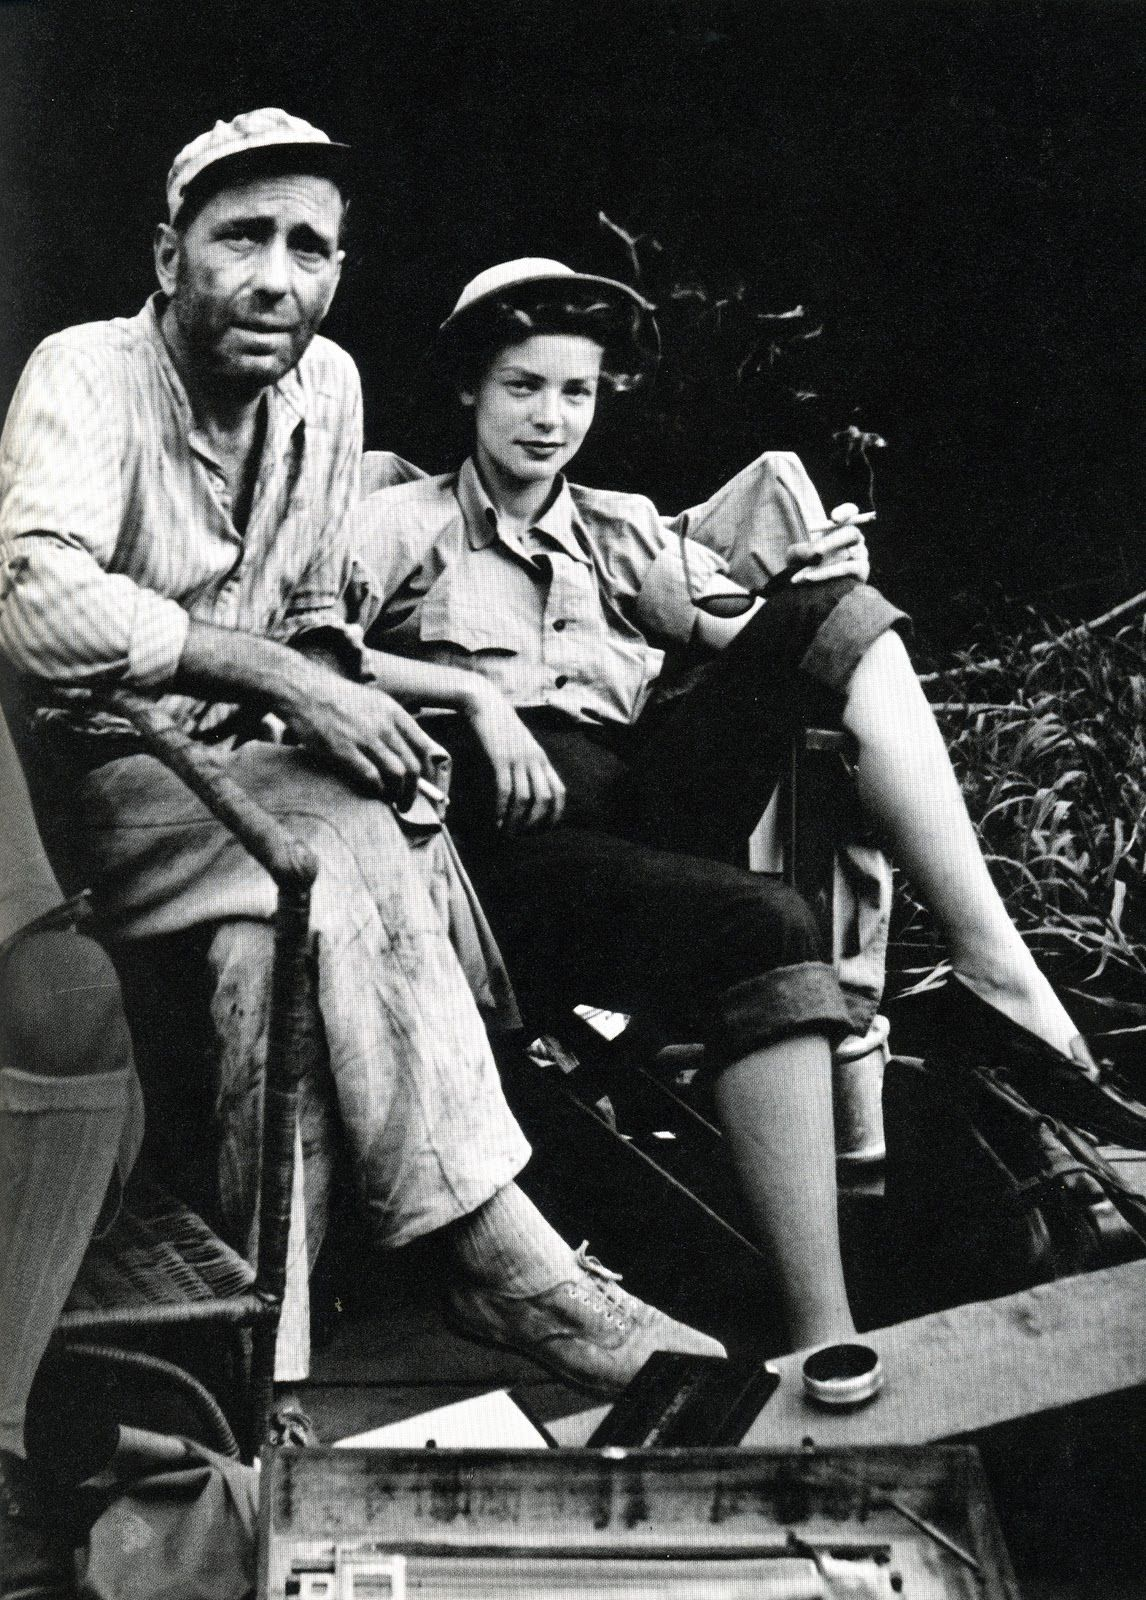 Love love love this photo of bogart and bacall and her style on the set of the african queen